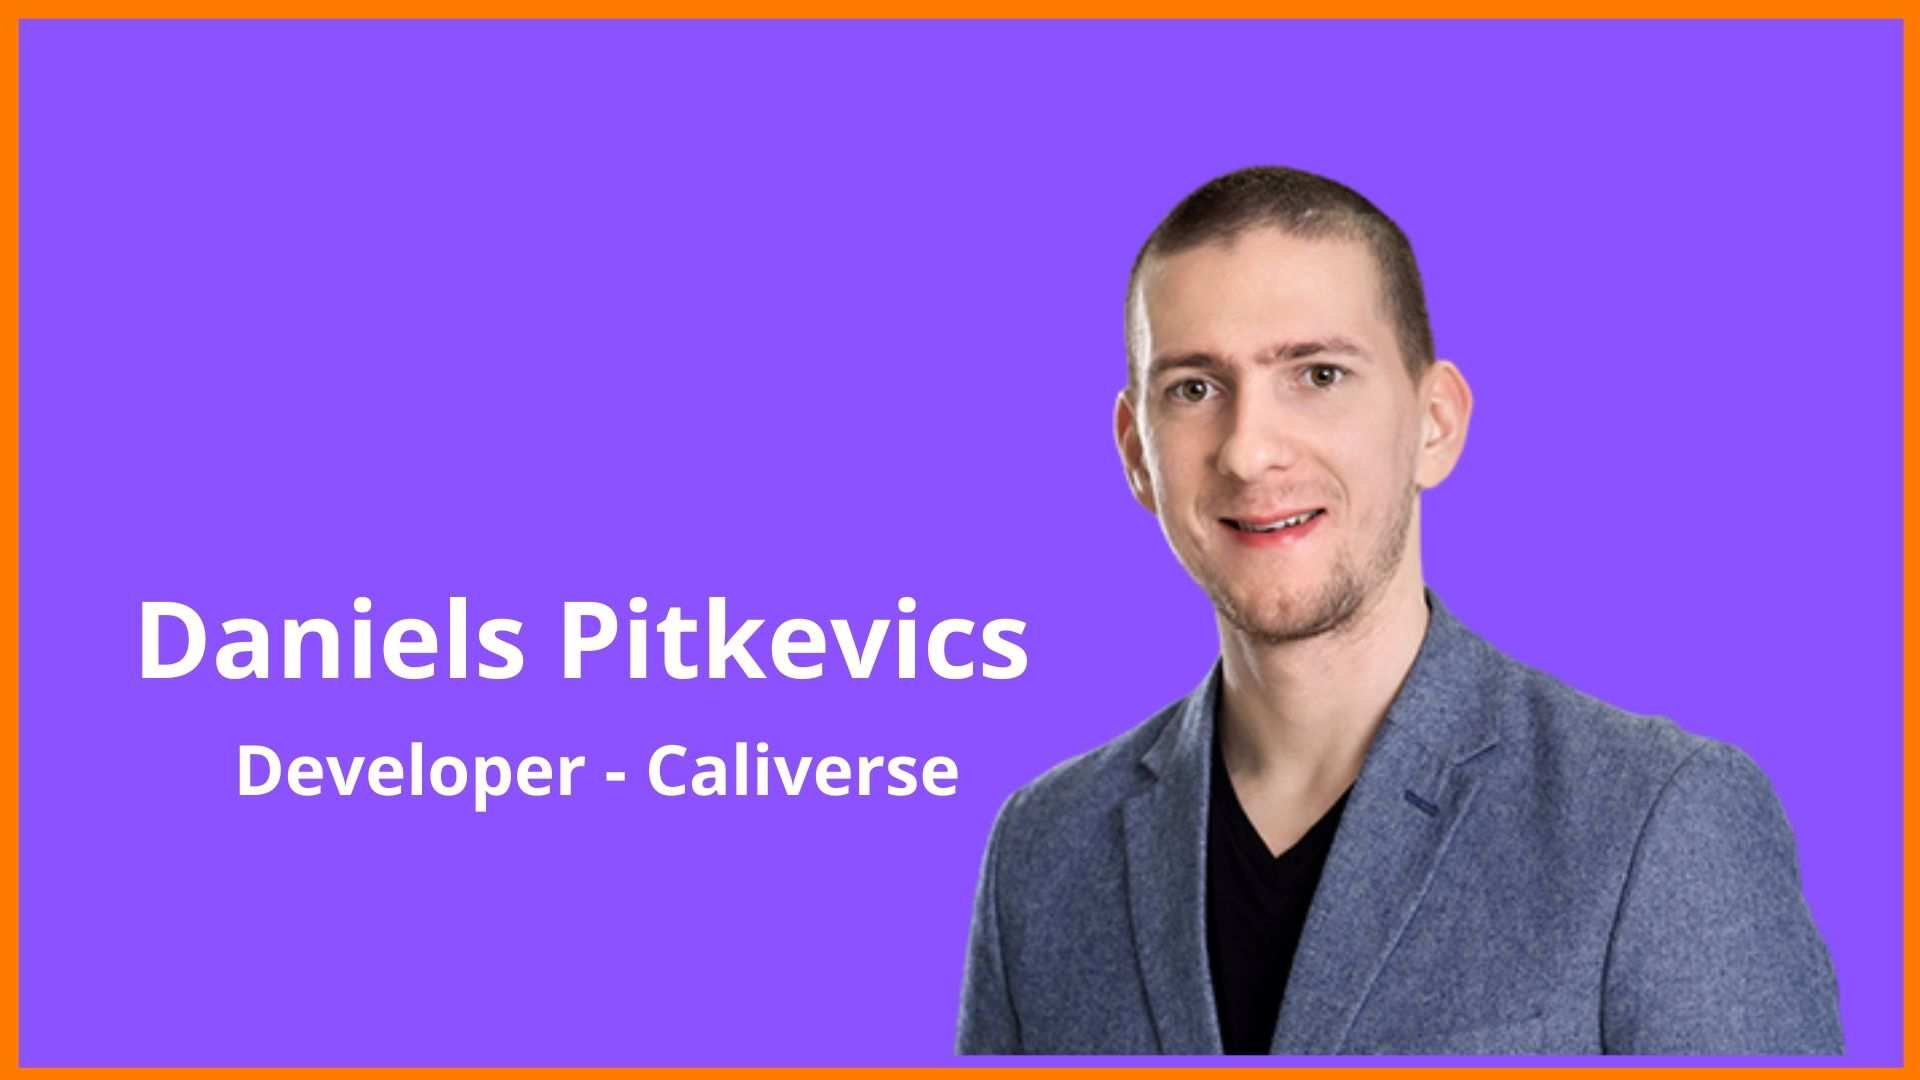 Caliverse - Creating Calisthenics Fitness and Social Networking App